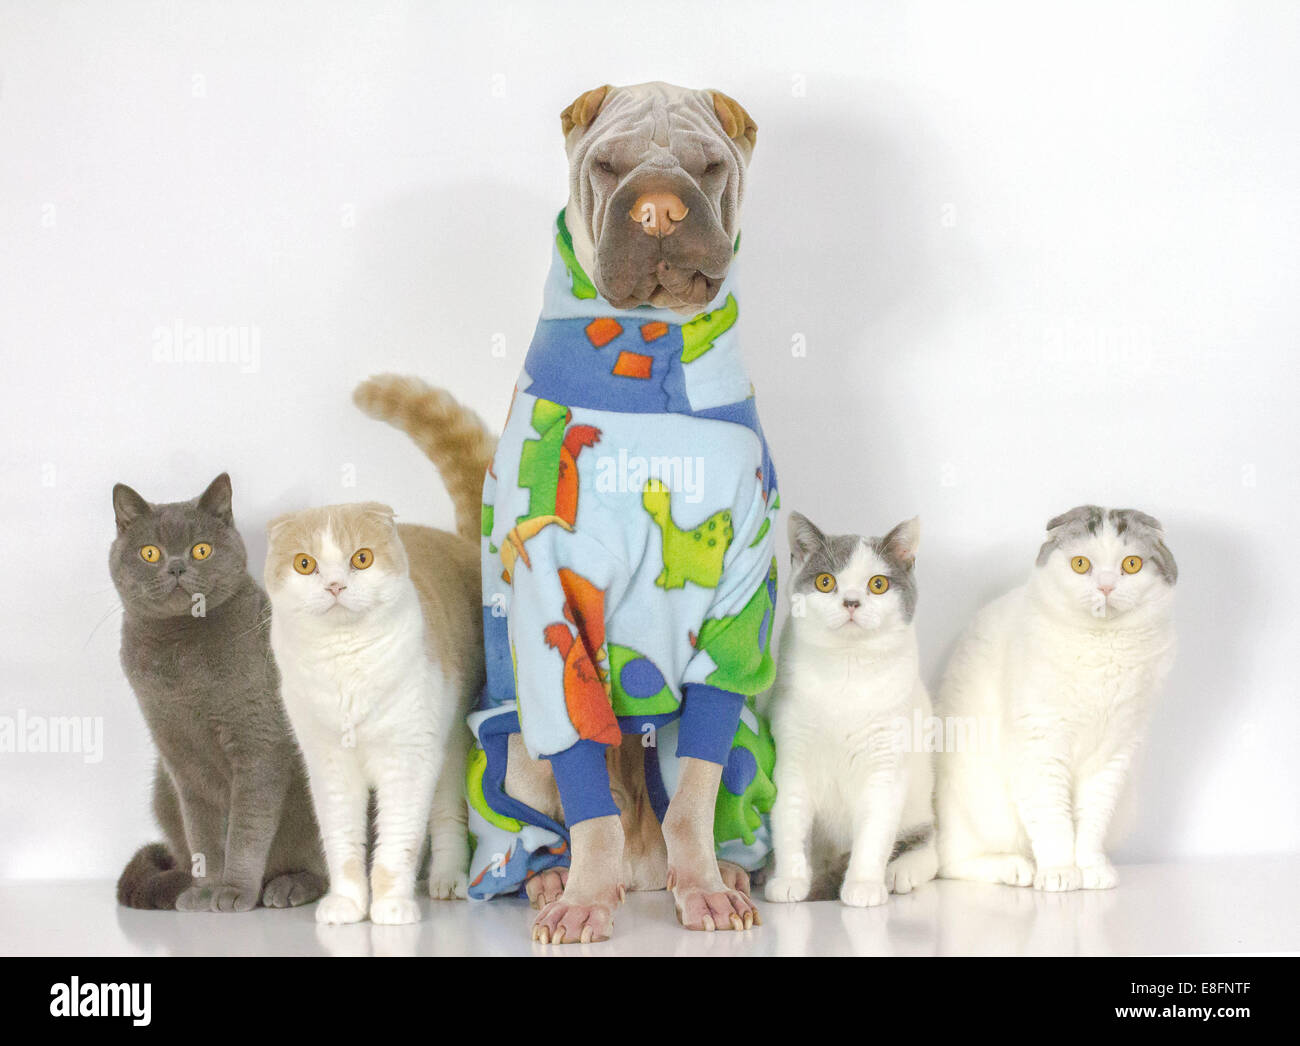 Portrait of dog and cats sitting together - Stock Image